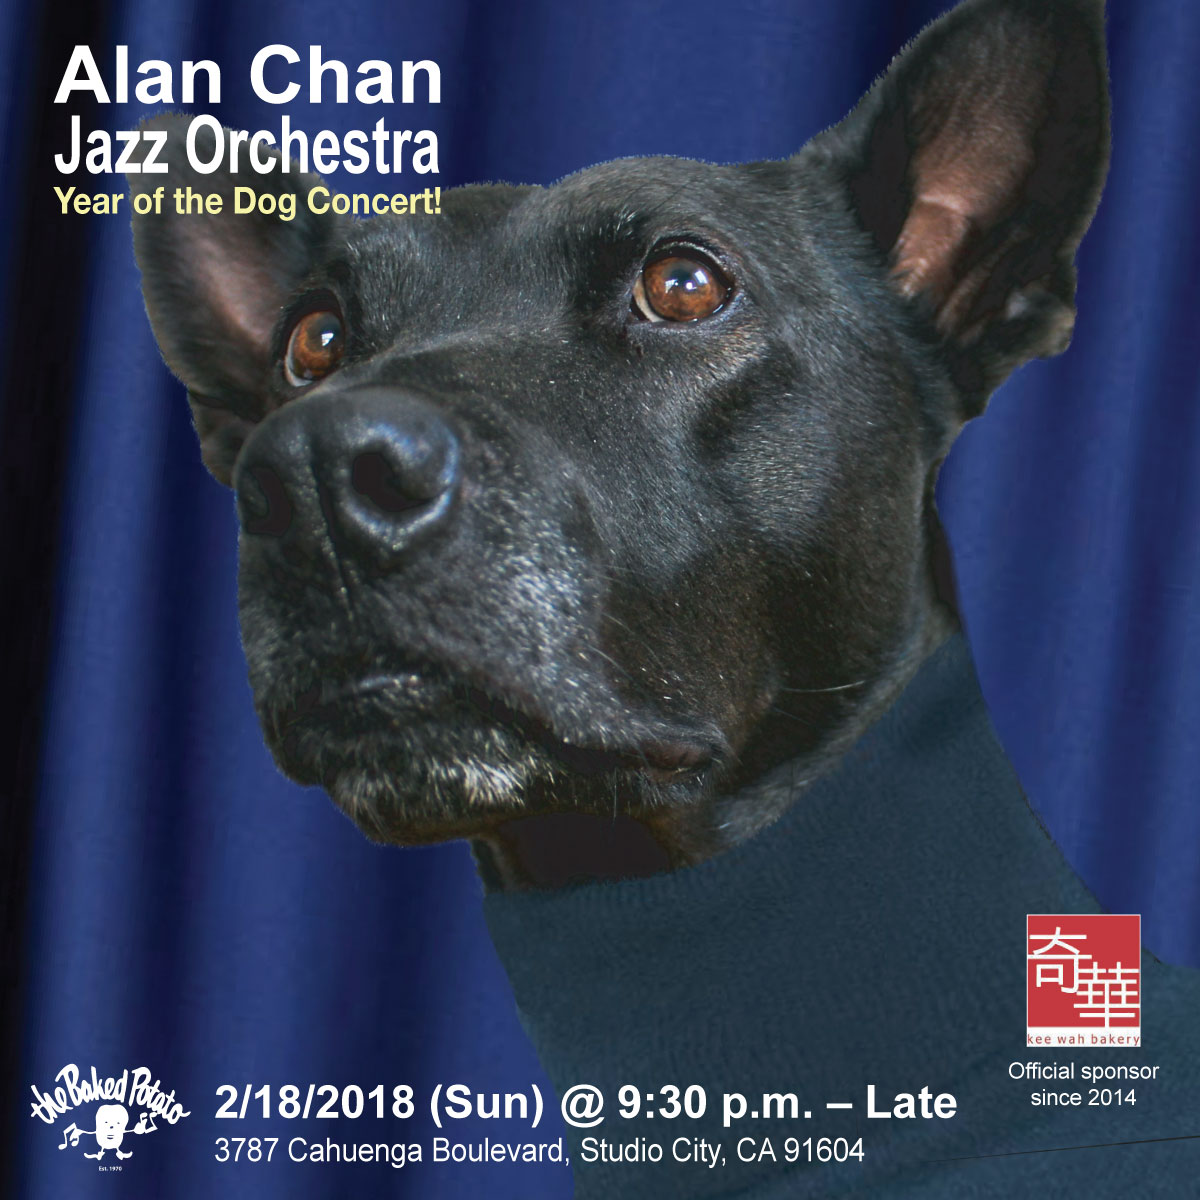 2/18/2018 - Year of the Dog Concert